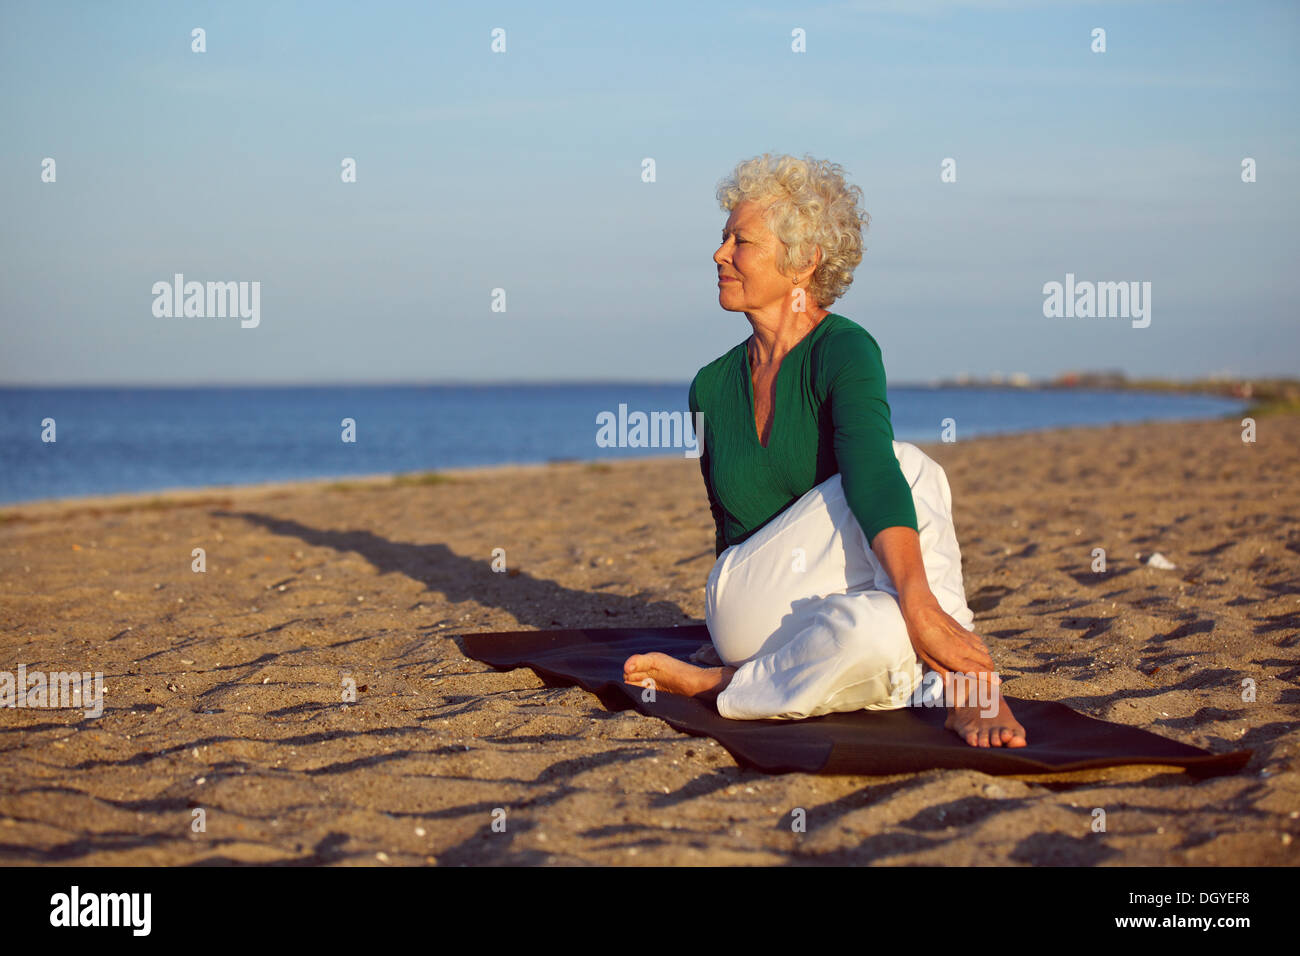 Senior woman performing a yoga routine on the beach. Elder woman doing stretching exercise on sandy beach with lots of copyspace - Stock Image